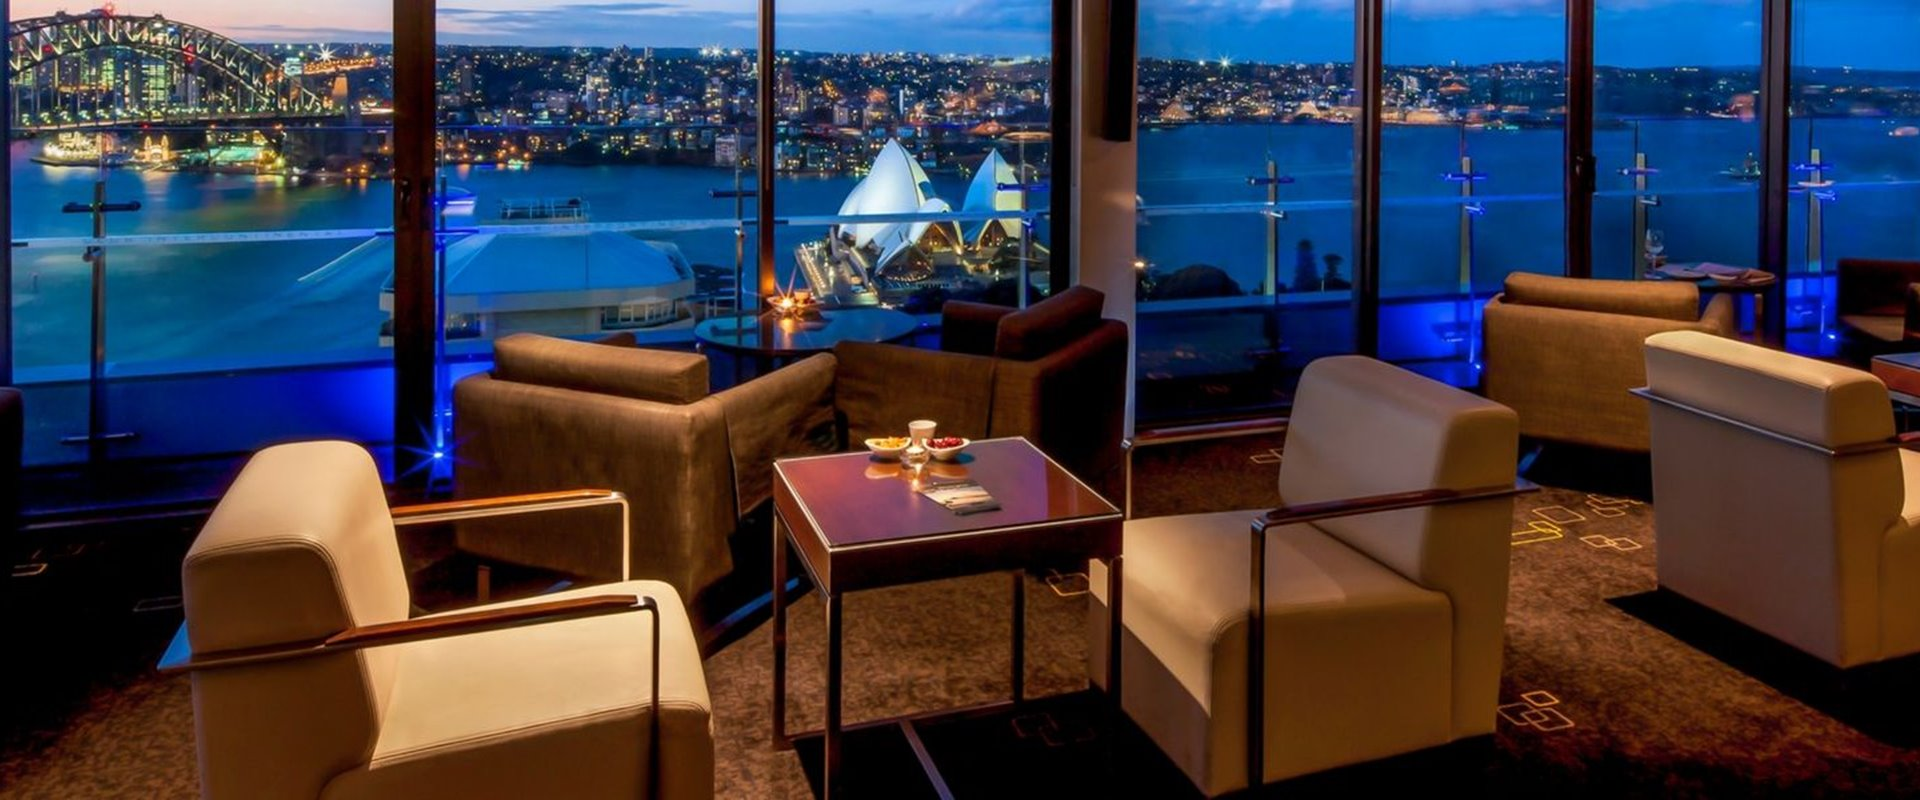 InterContinental Sydney | Conference Venues Sydney | Conference Venues New South Wales